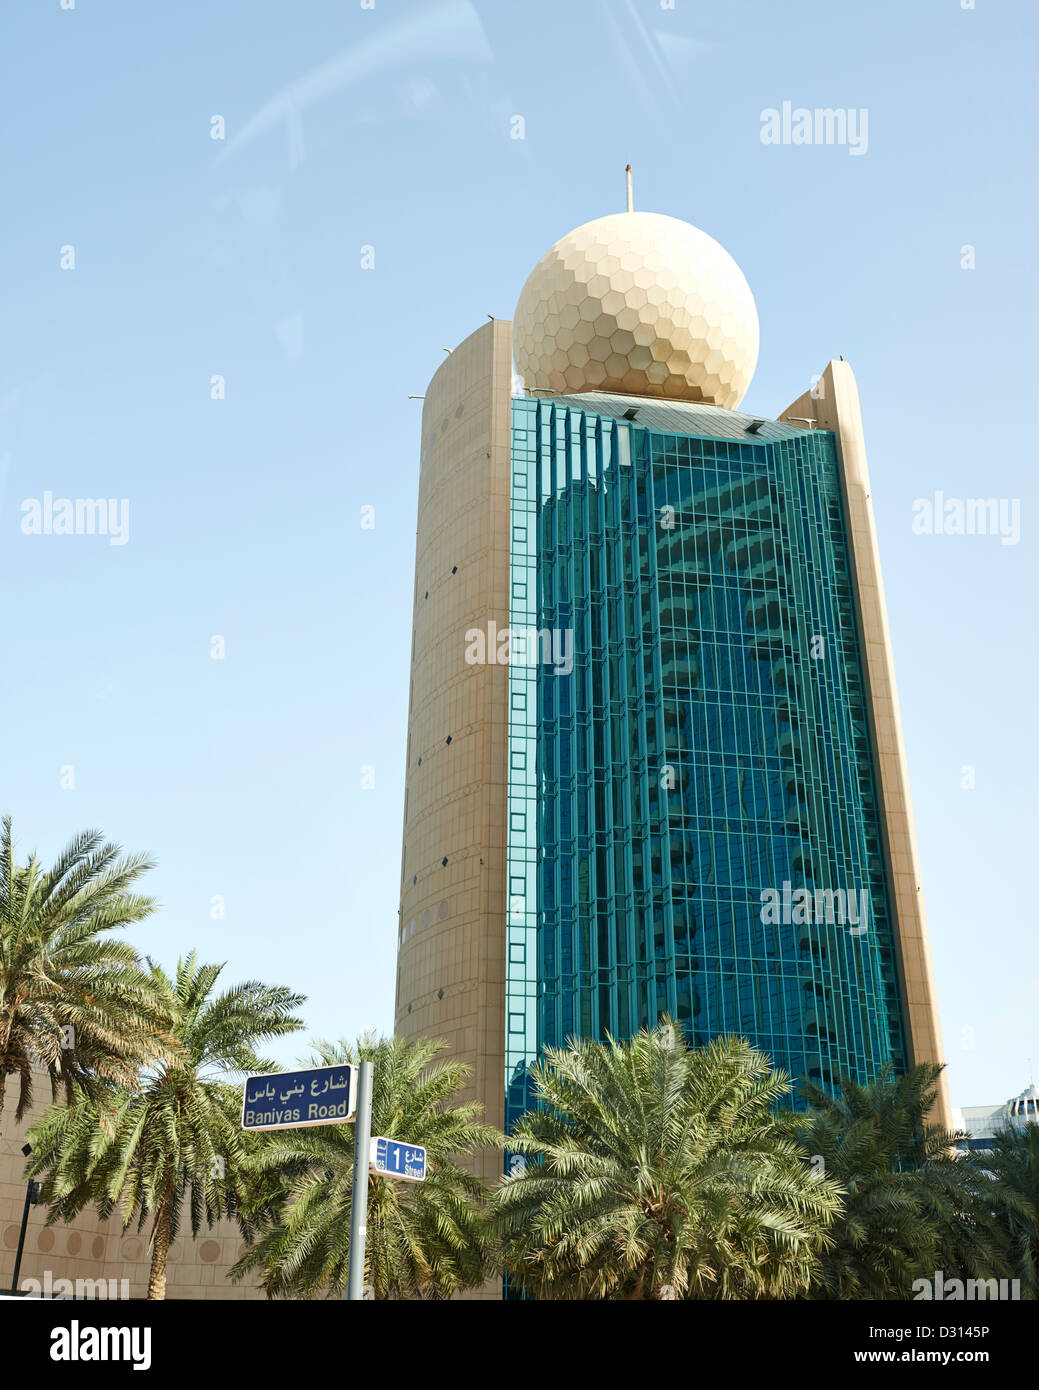 The Etisalat Tower, the telecommunications headquarters building and radio tower designed by Canadian architect - Stock Image